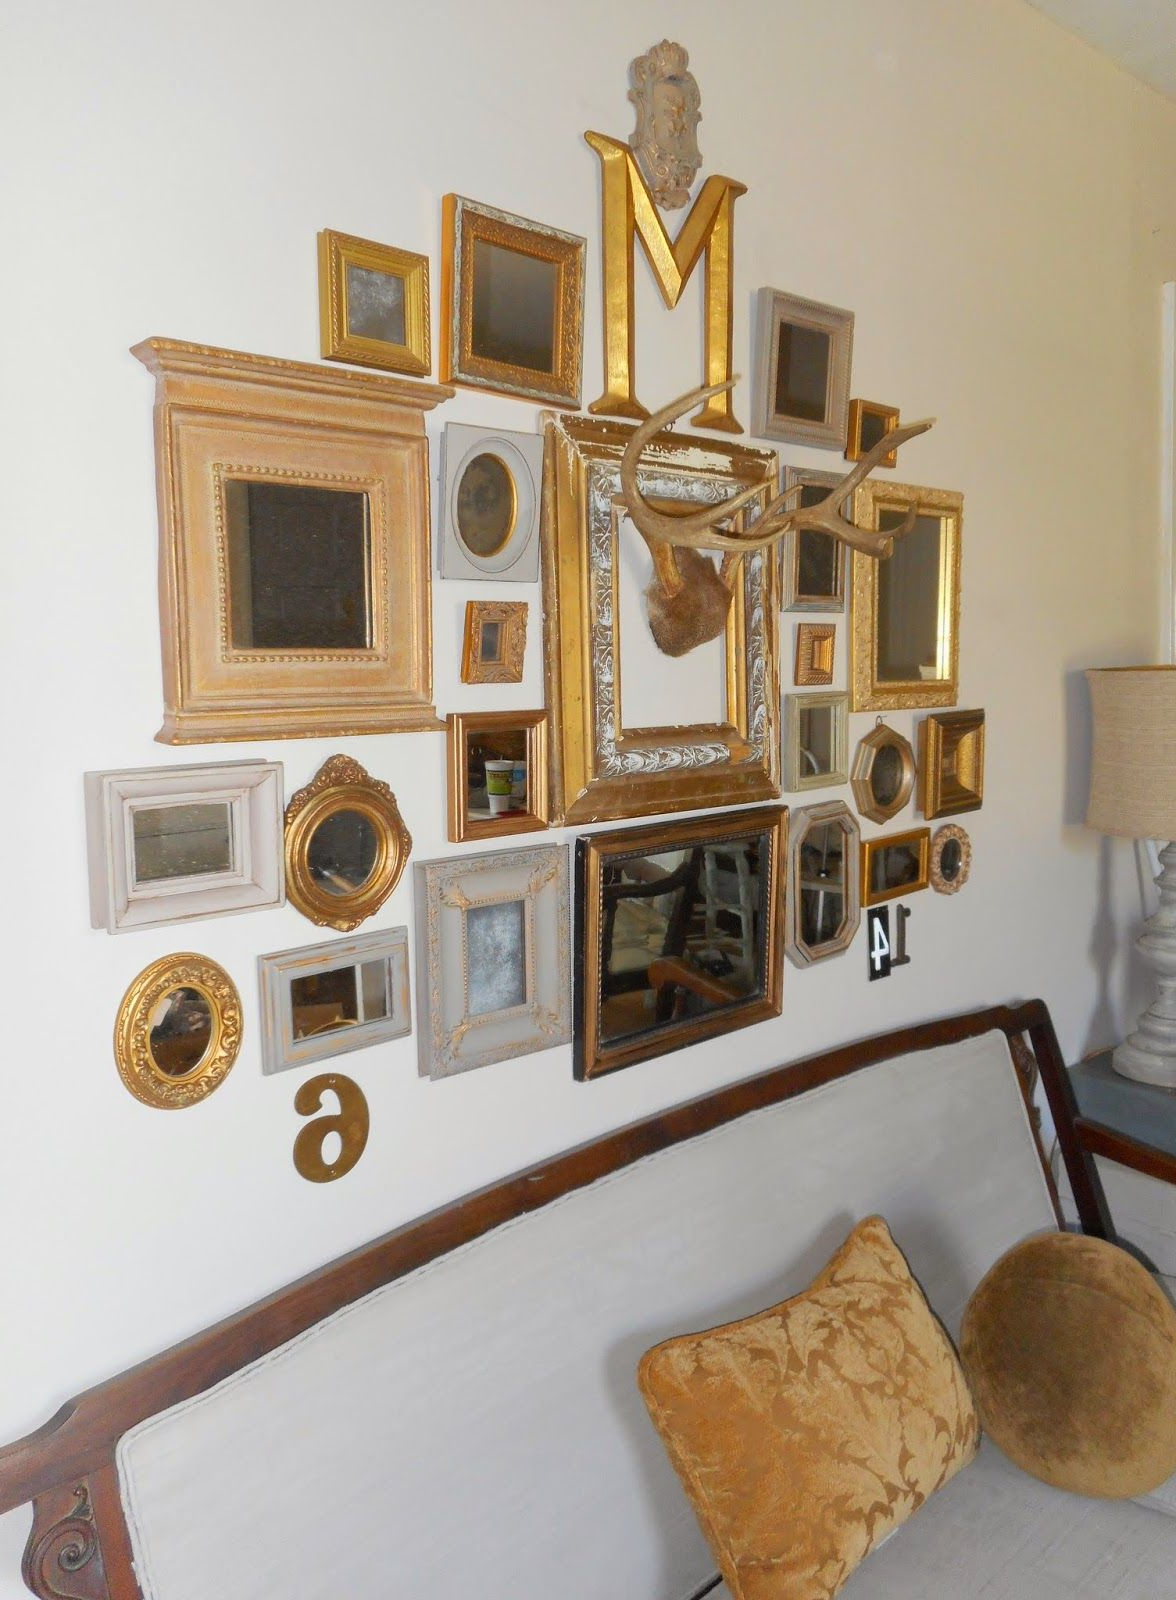 Revisionary Life – Gallery Wall Using Gilded Mirrors With Industrial Intended For Popular Gallery Wall Mirrors (View 18 of 20)